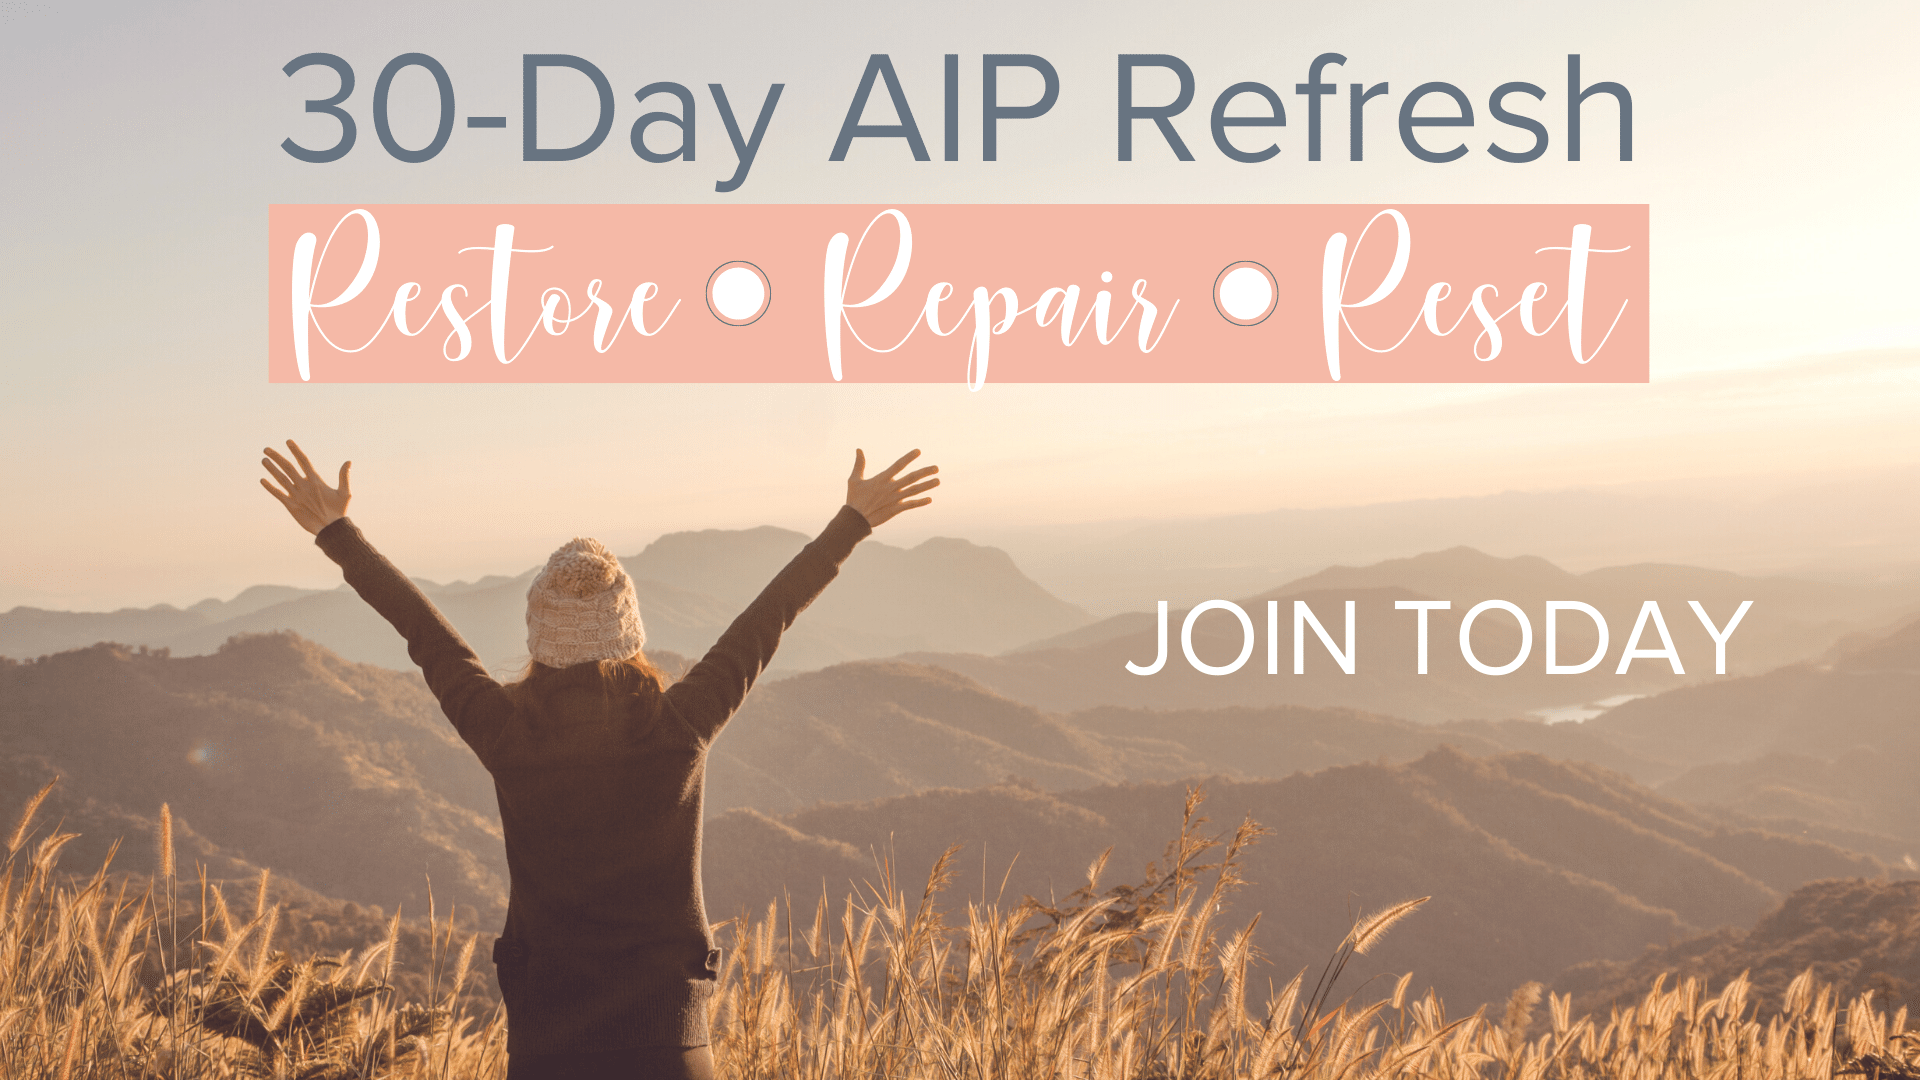 30-Day AIP Refresh